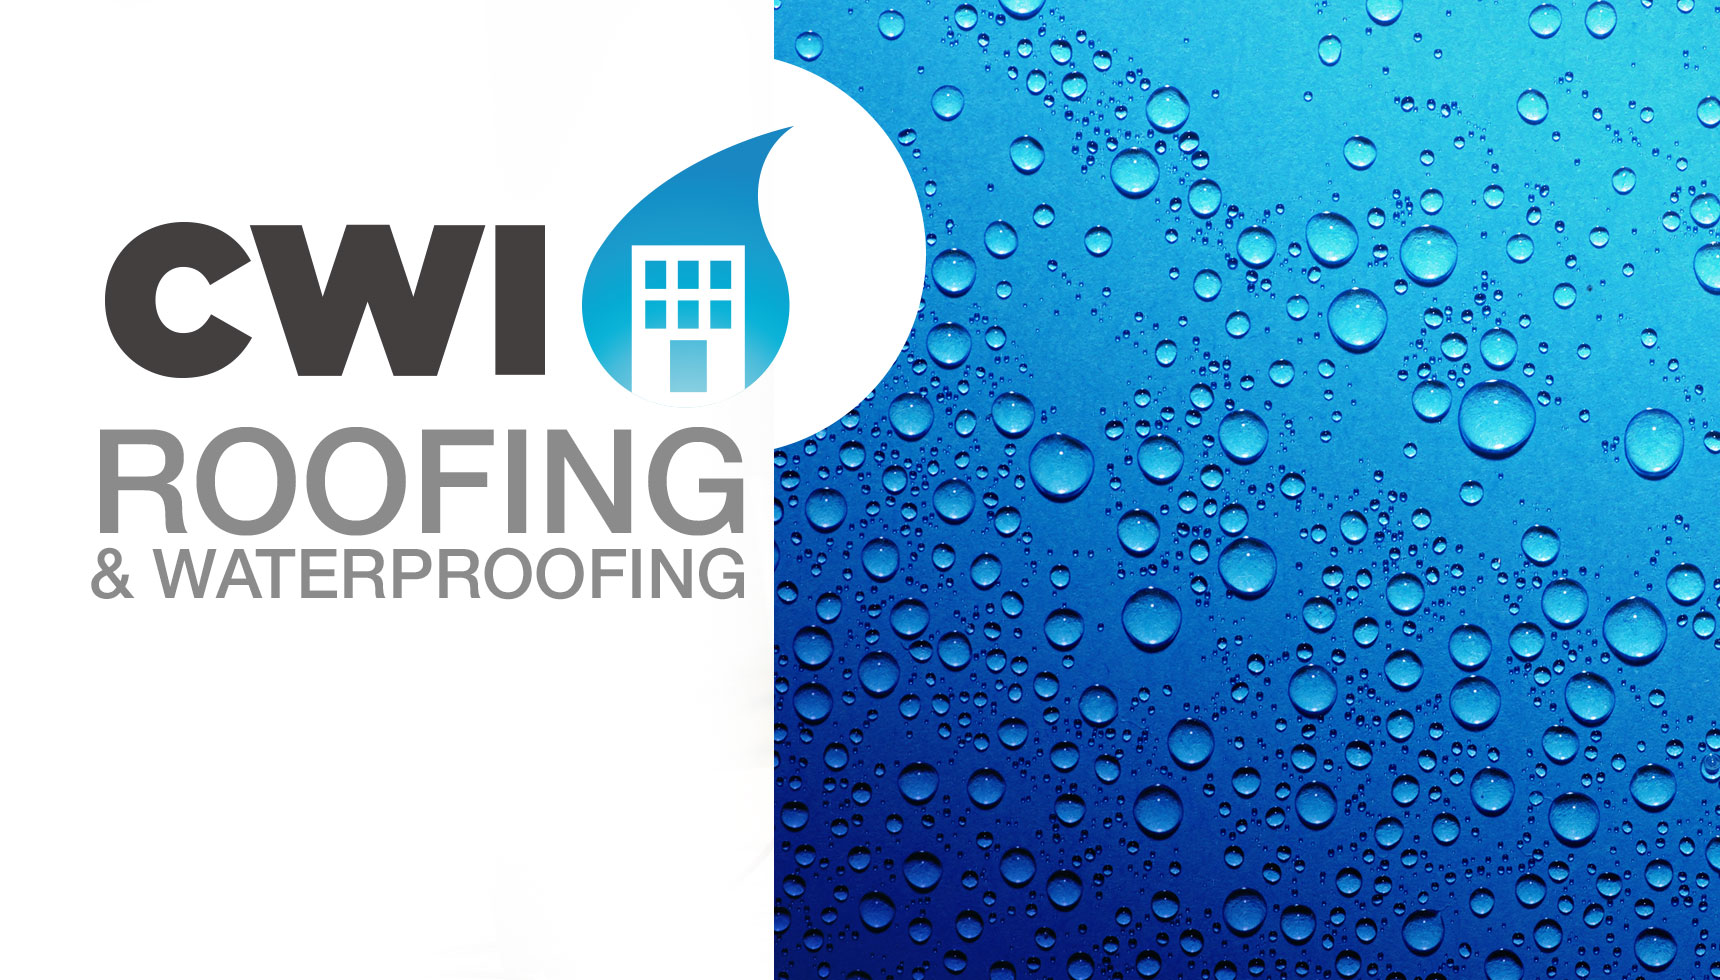 CWI Commercial Waterproofers Inc. - Roofing and Waterproofing